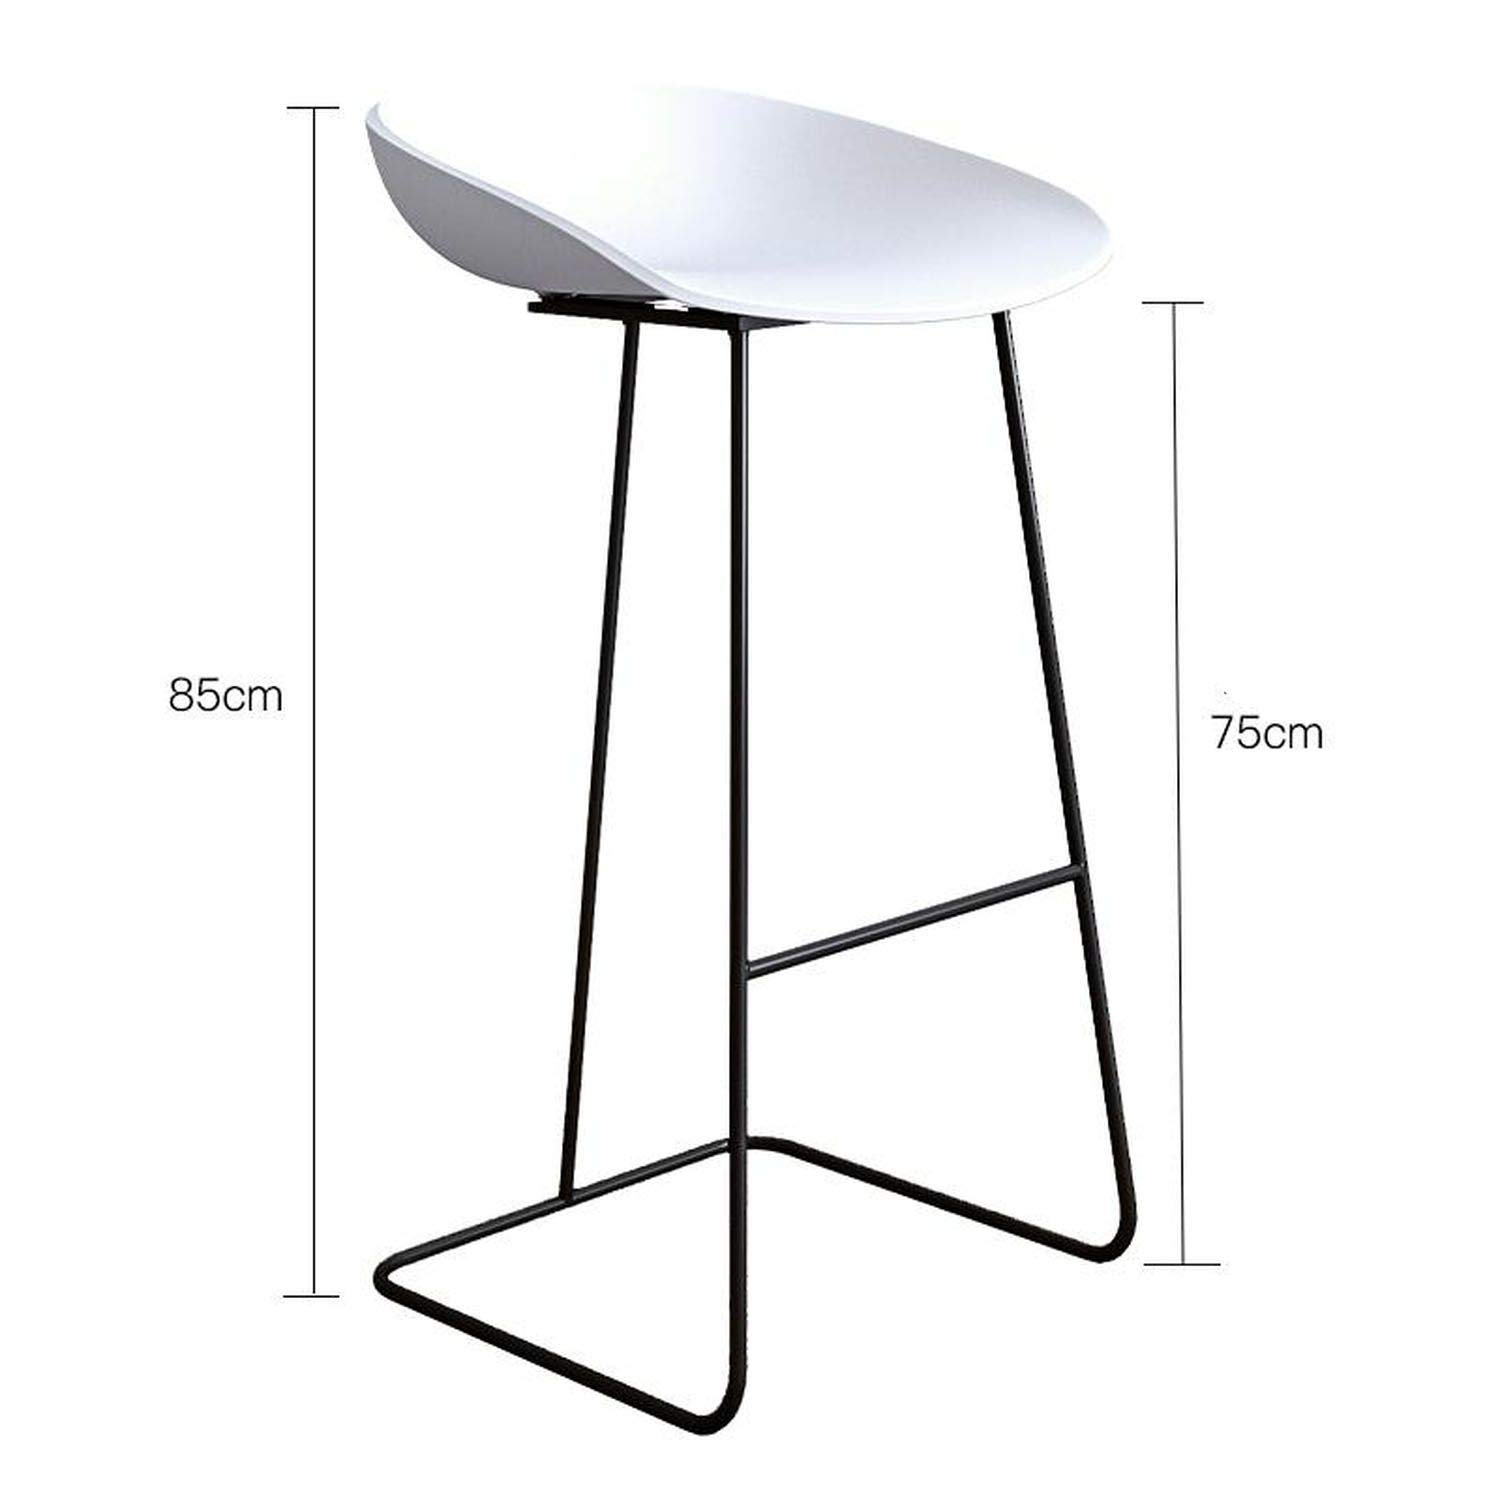 Style 2 one size Bar Stools gold Wrought Iron Stool Modern Minimalist Home Backrest High Chair Creative Net Red Bar,Style 11